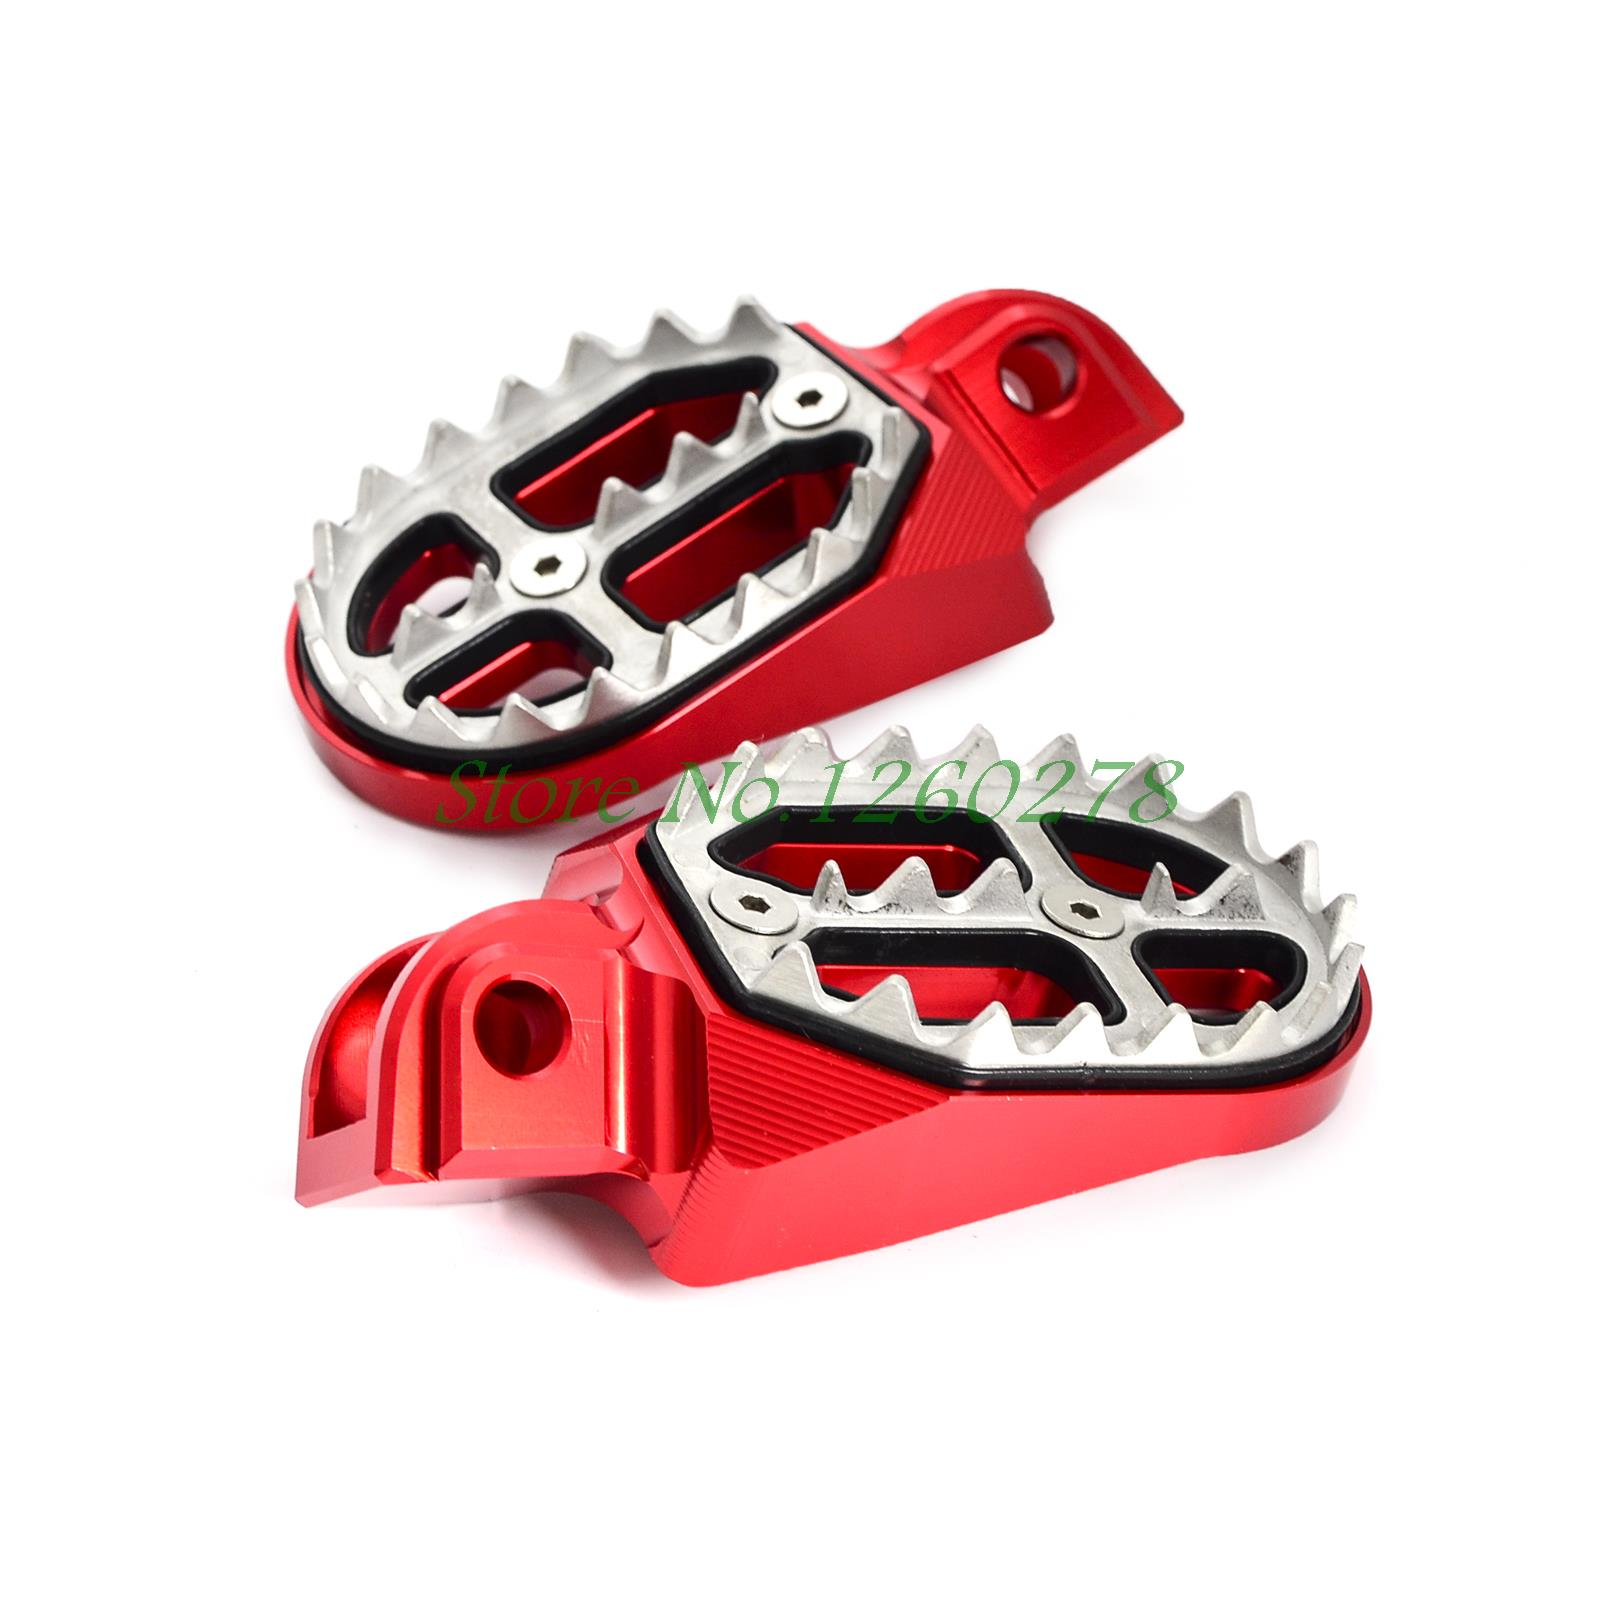 Billet MX Foot Pegs FootRest Pedals For Beta RR 4T 350 390 400 430 450 480